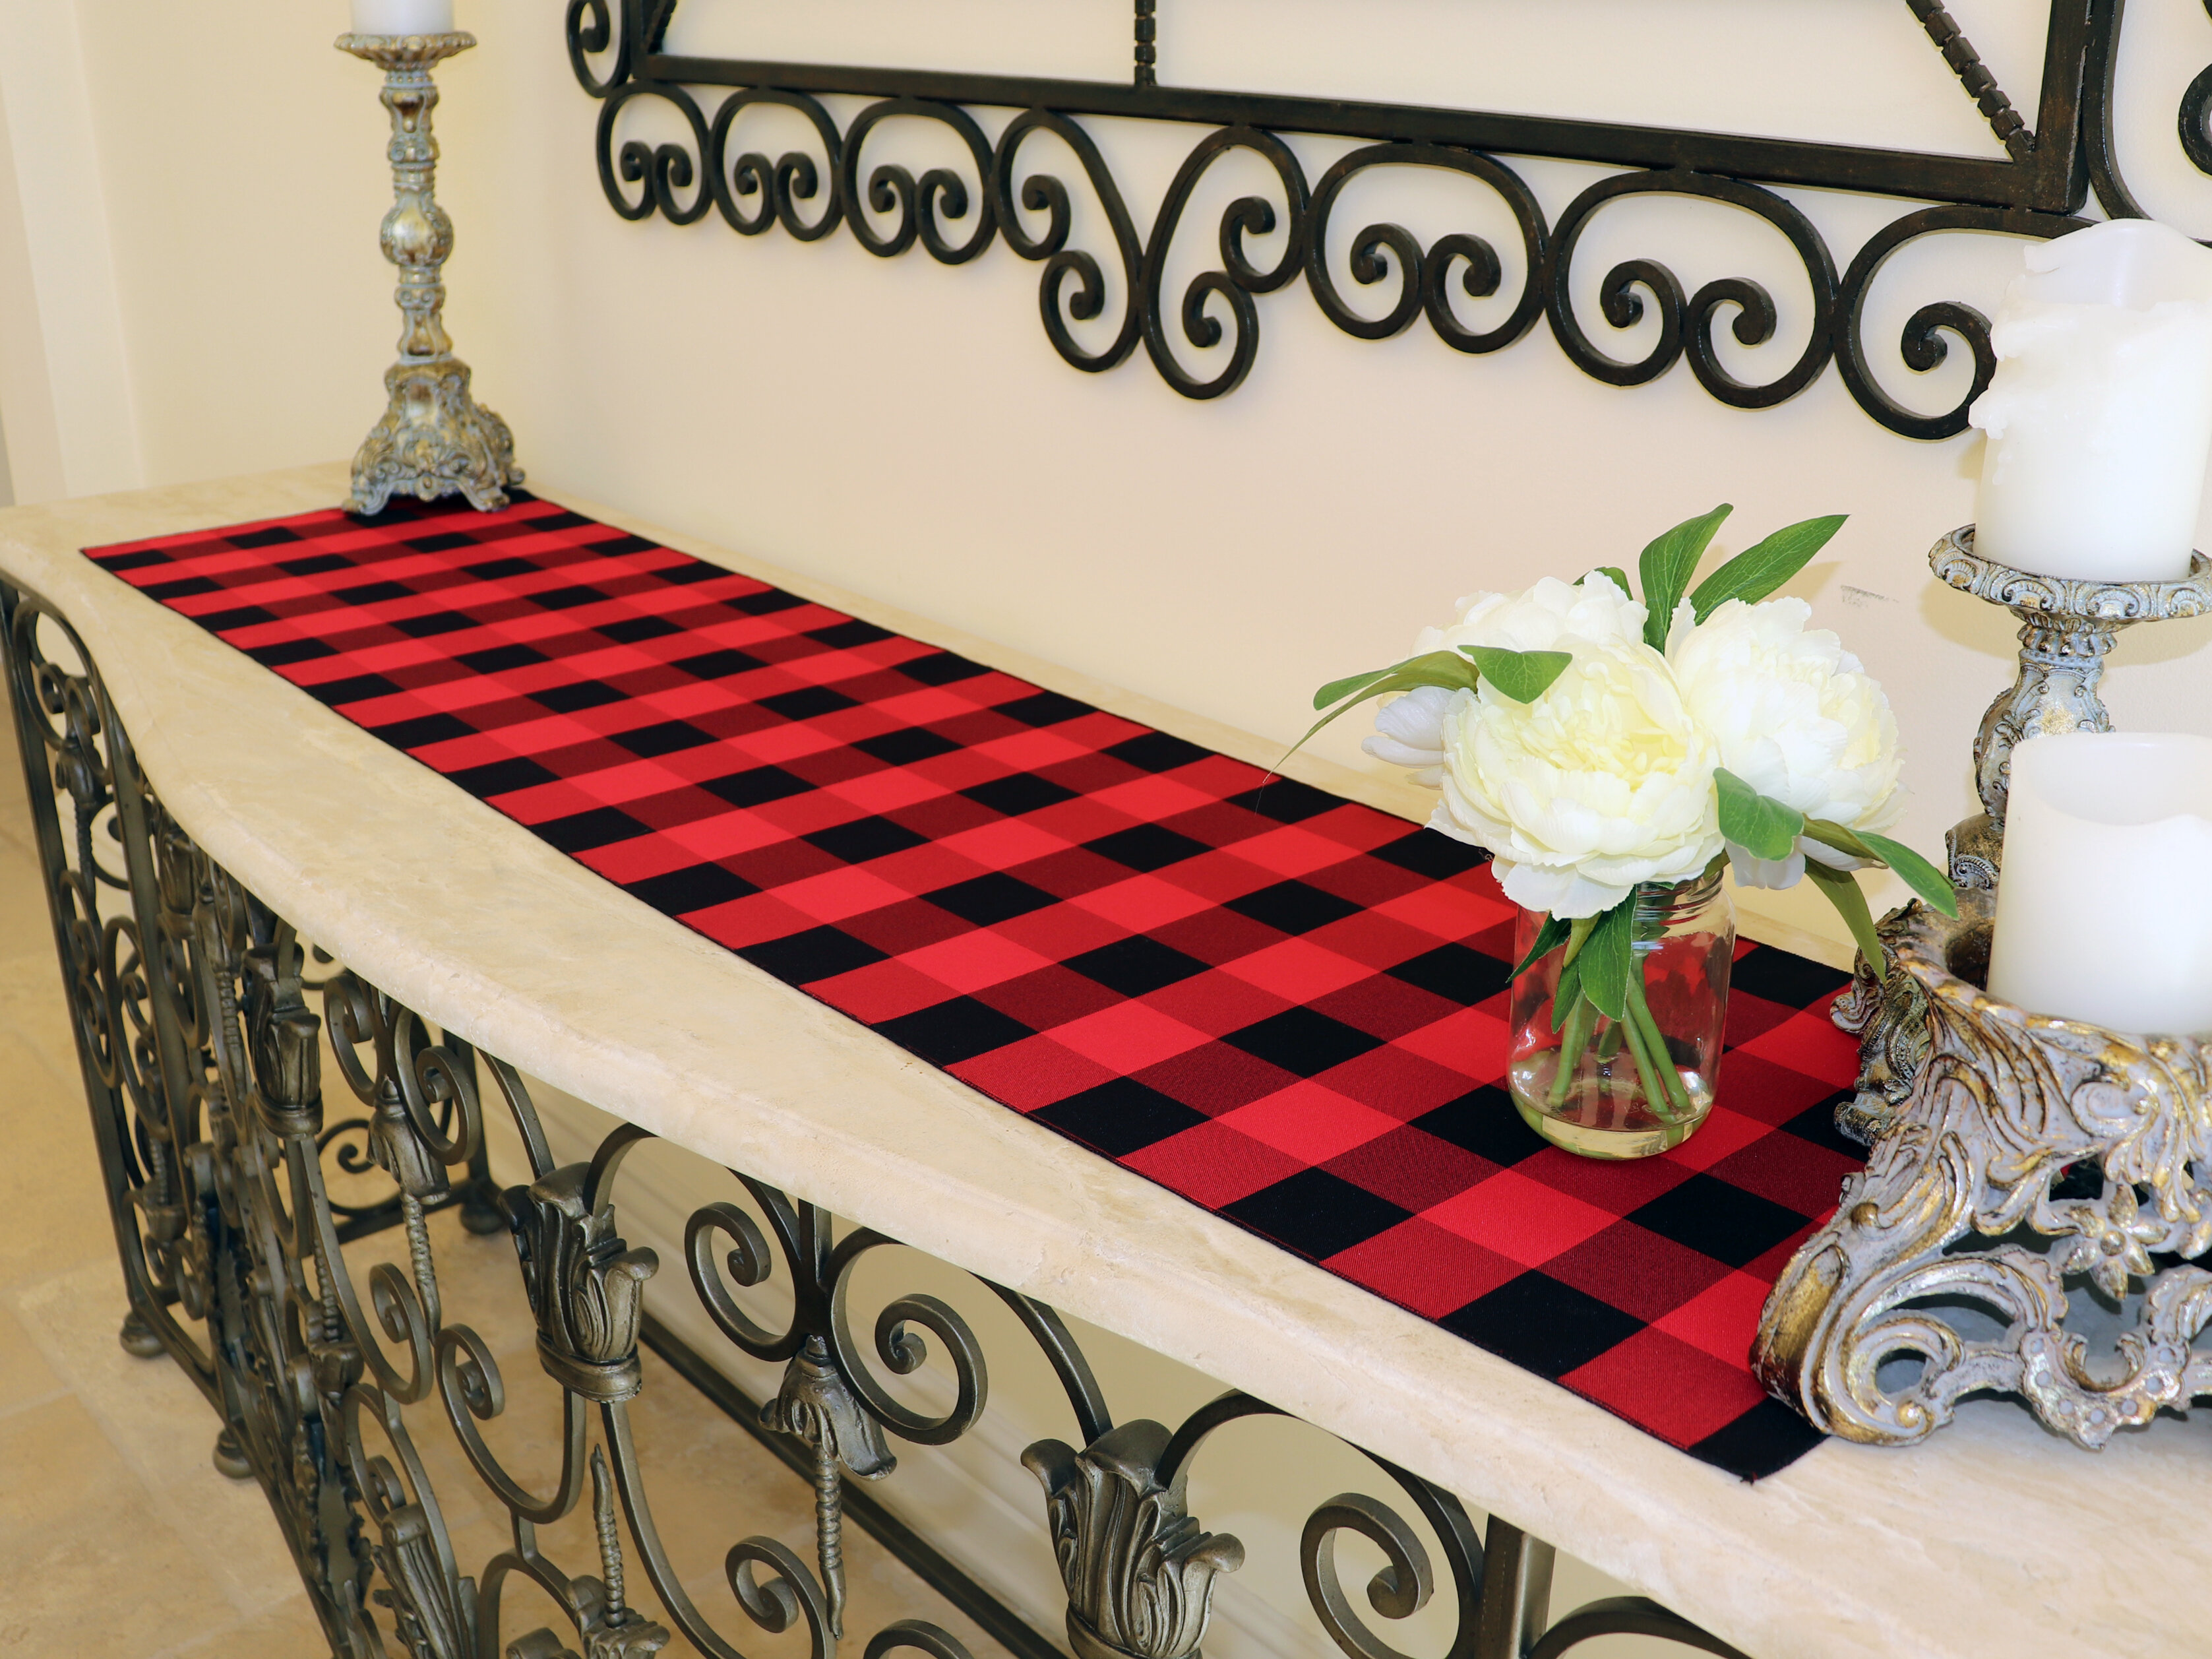 14 X 90 Red Table Runners You Ll Love In 2021 Wayfair